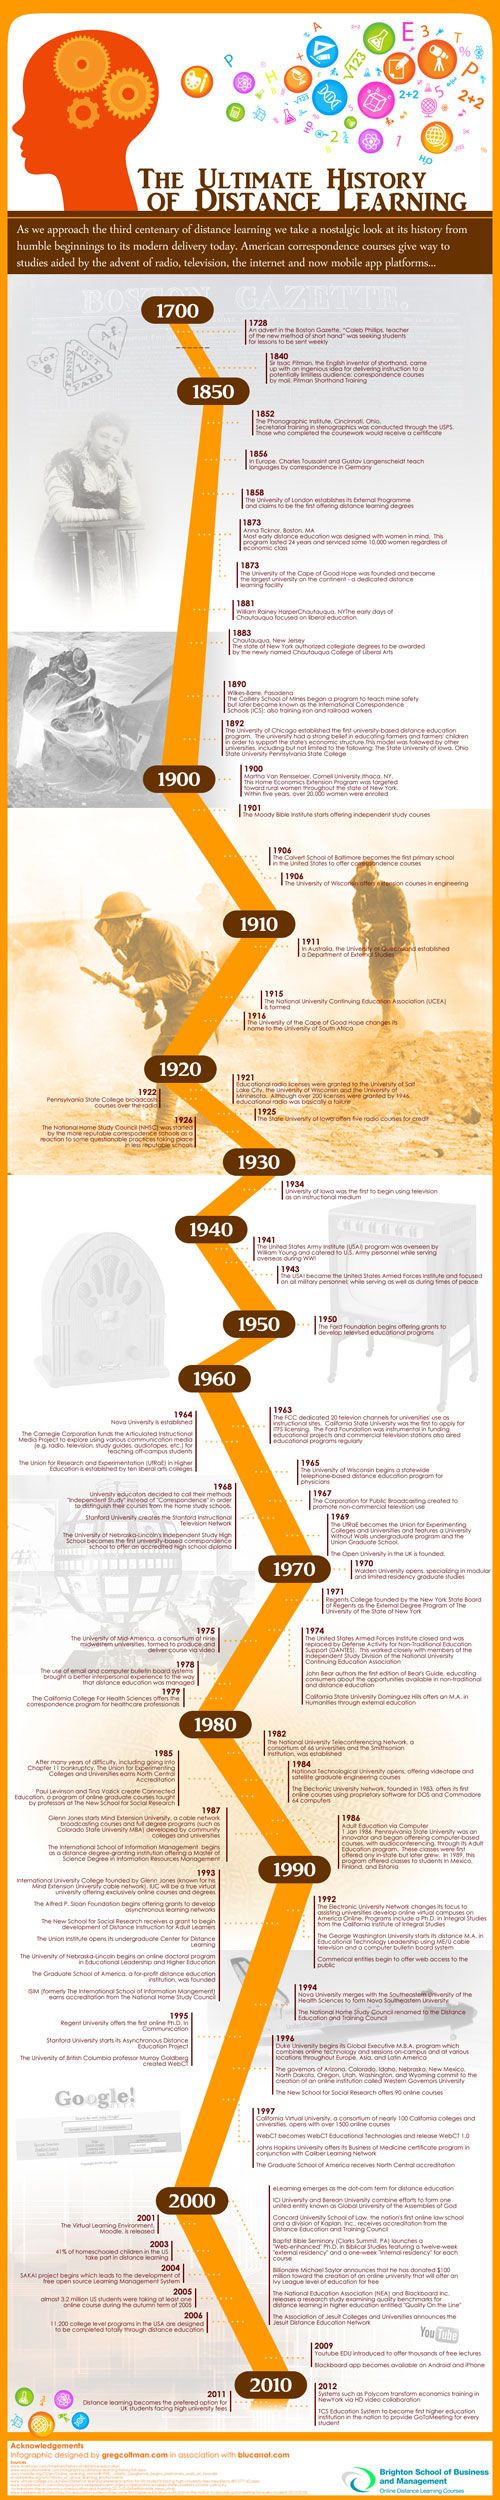 Infographic - Brighton - The Ultimate History of Distance Learning